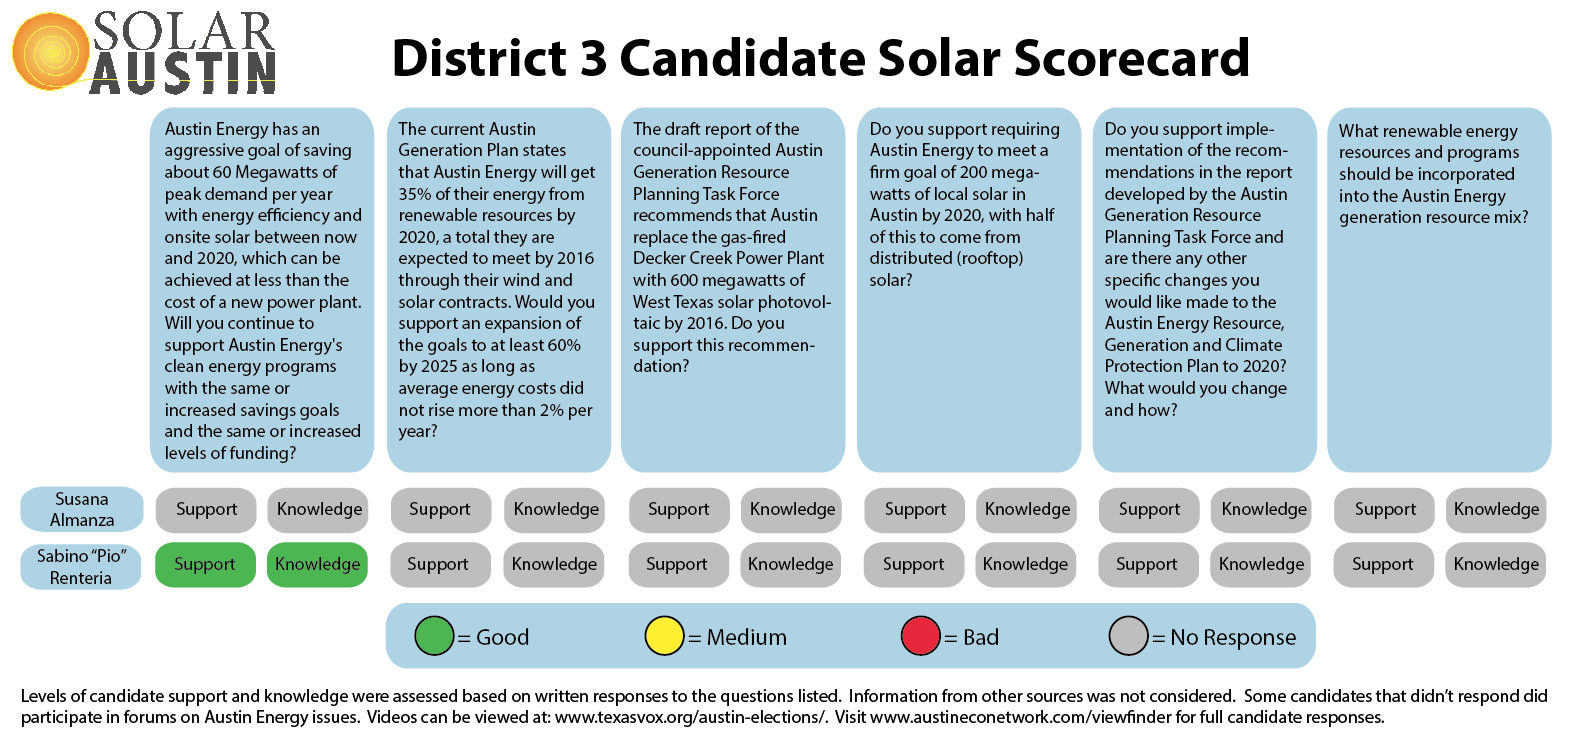 2014 Solar Austin Council District 3 Candidate Solar Scorecard - Runoffs